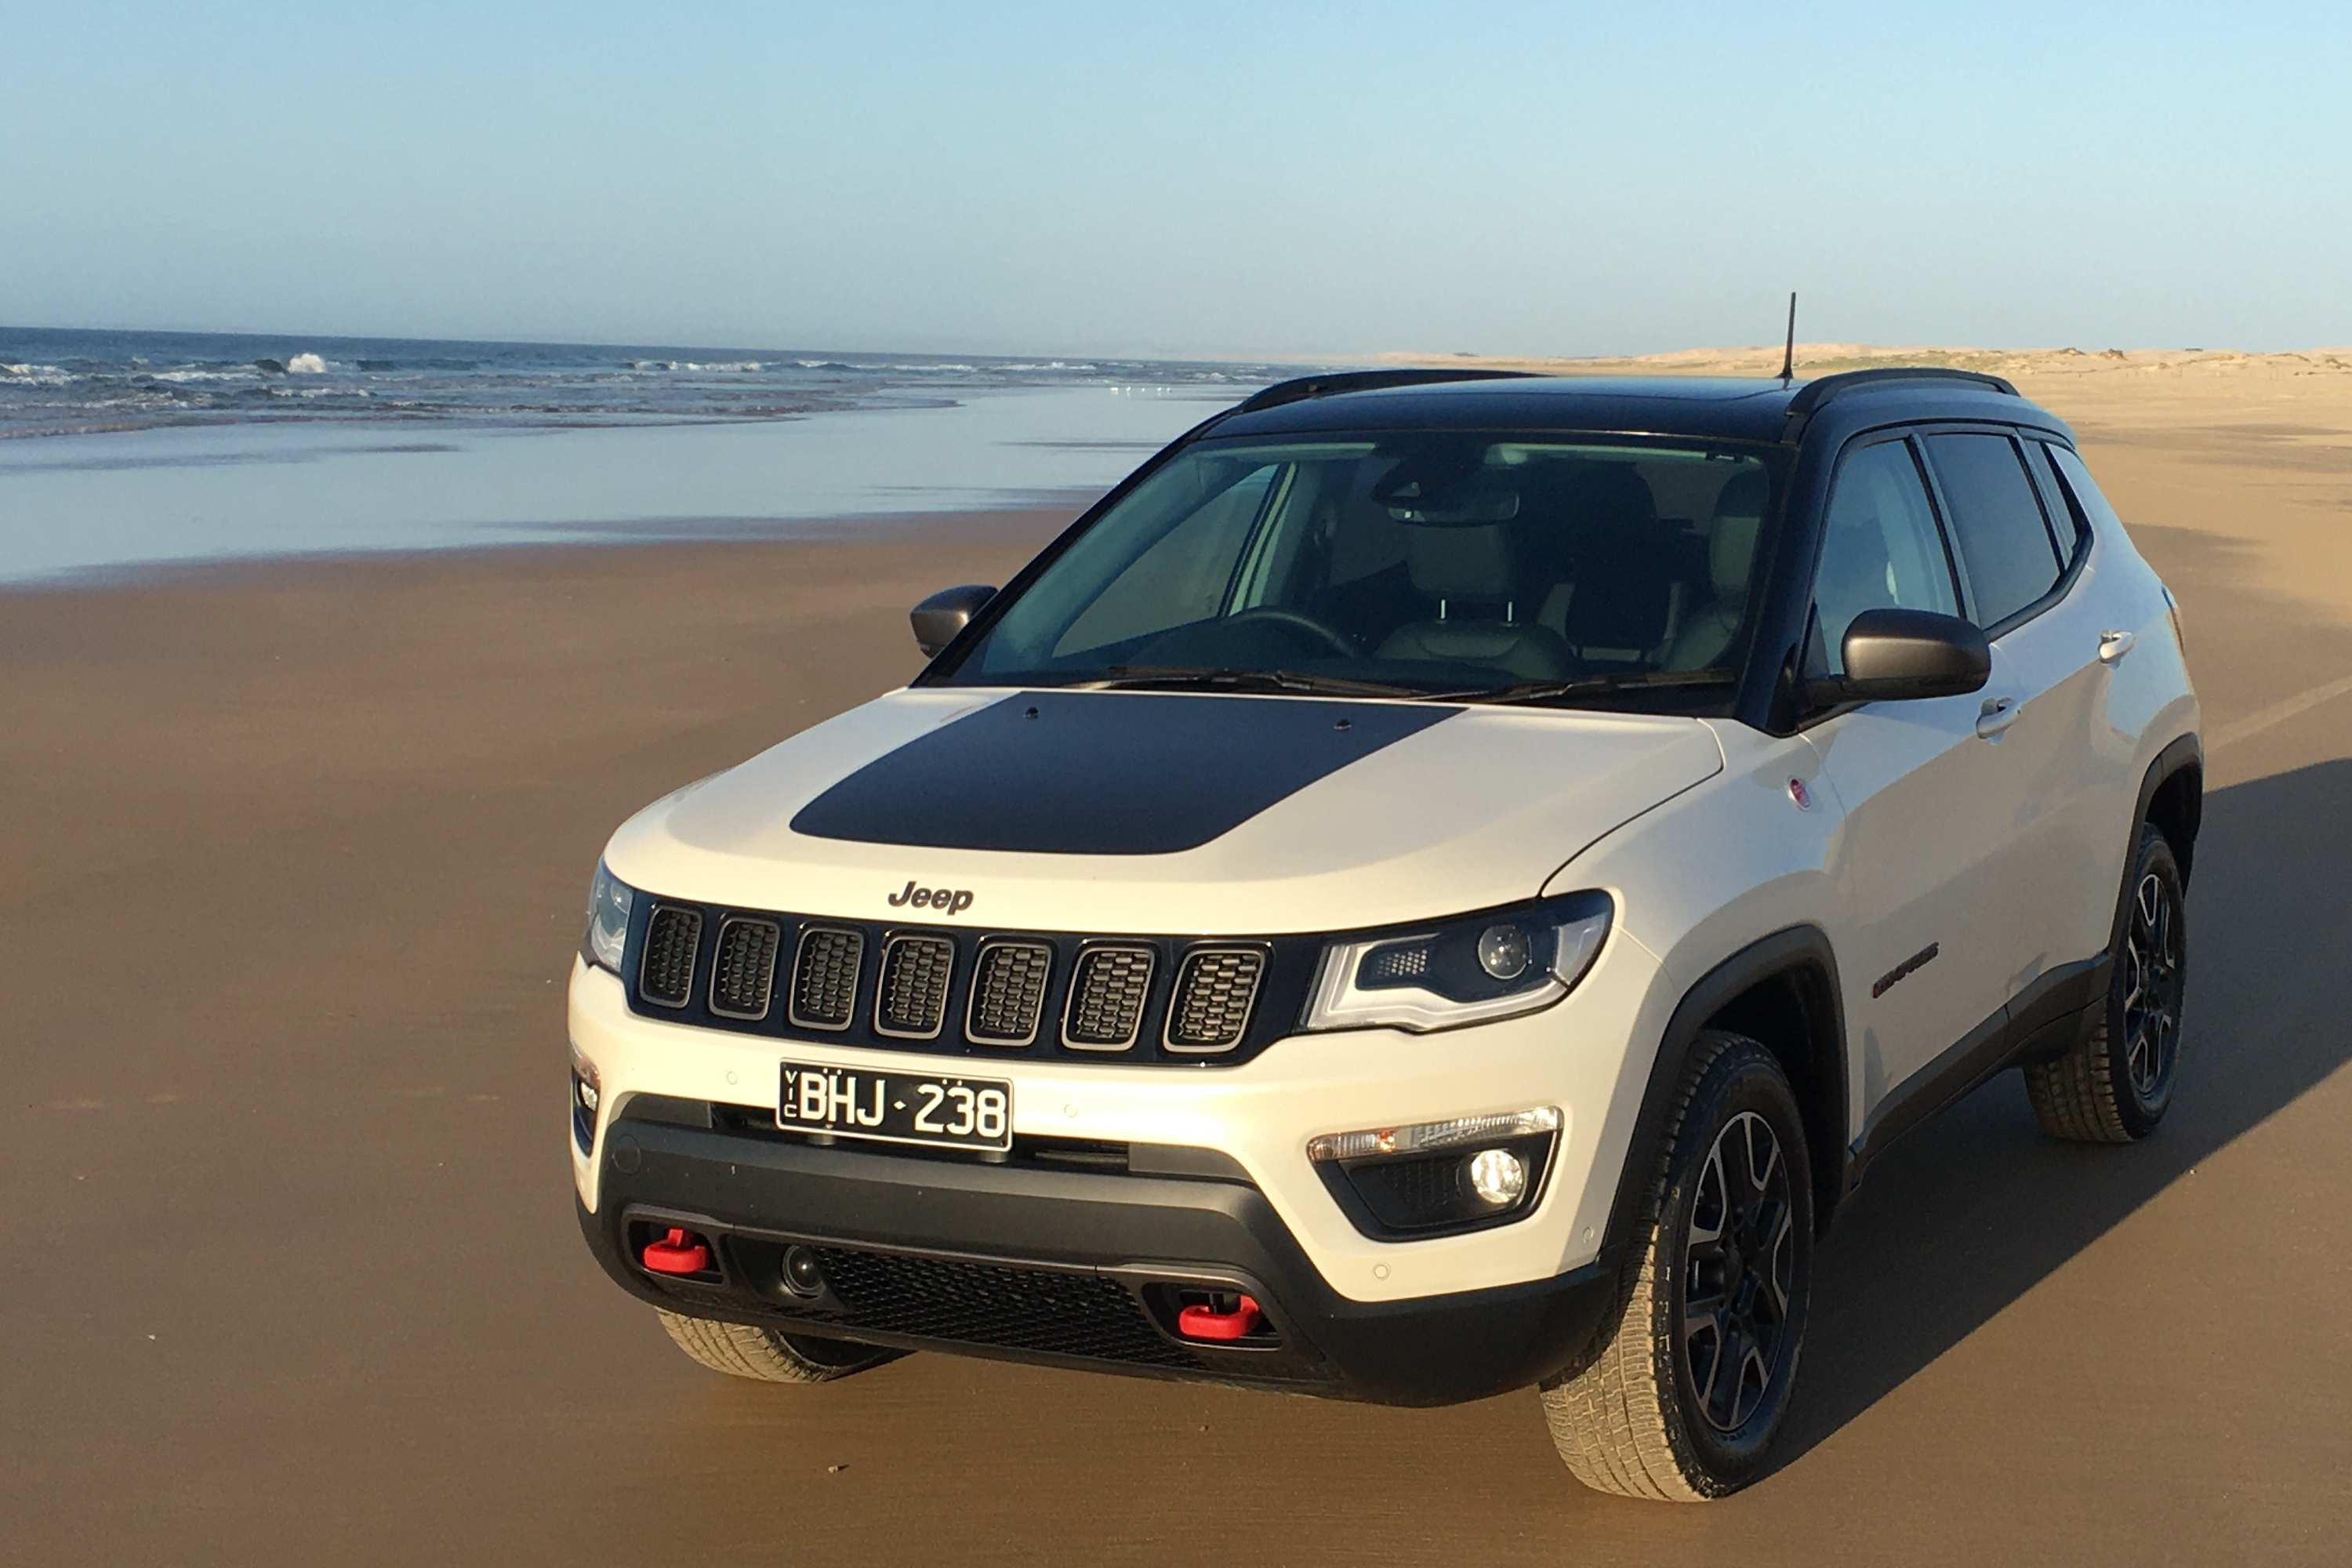 2020 Jeep Compass Trailhawk beach 3